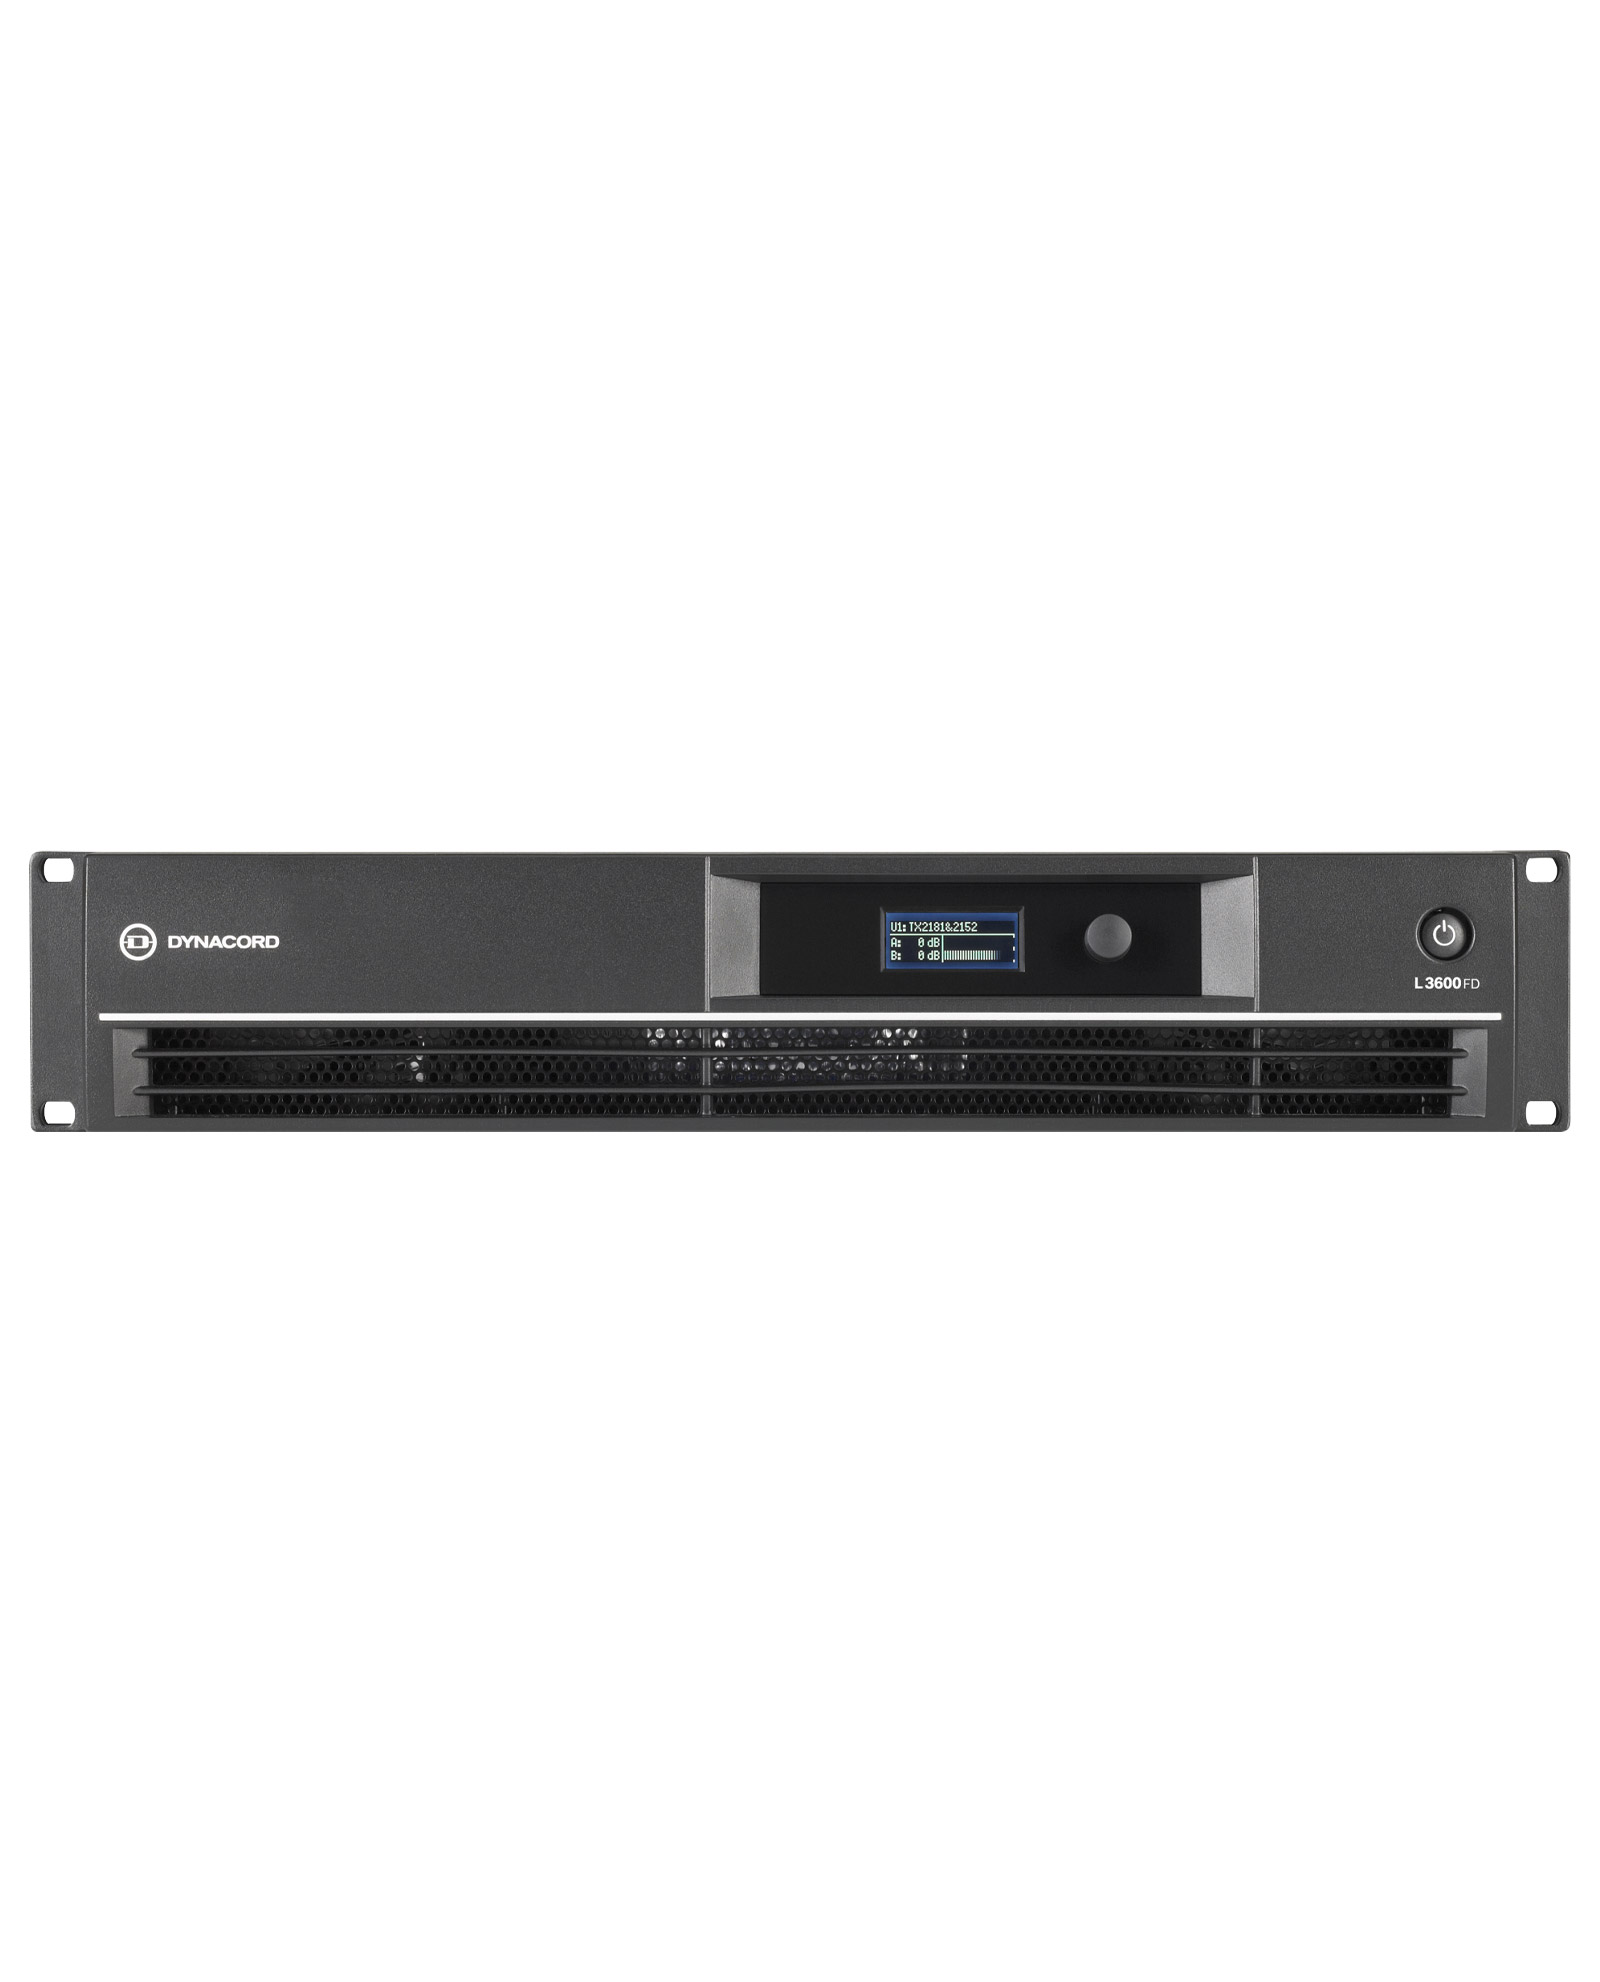 Dynacord L3600fd Dsp 2x1800w Power Amplifier